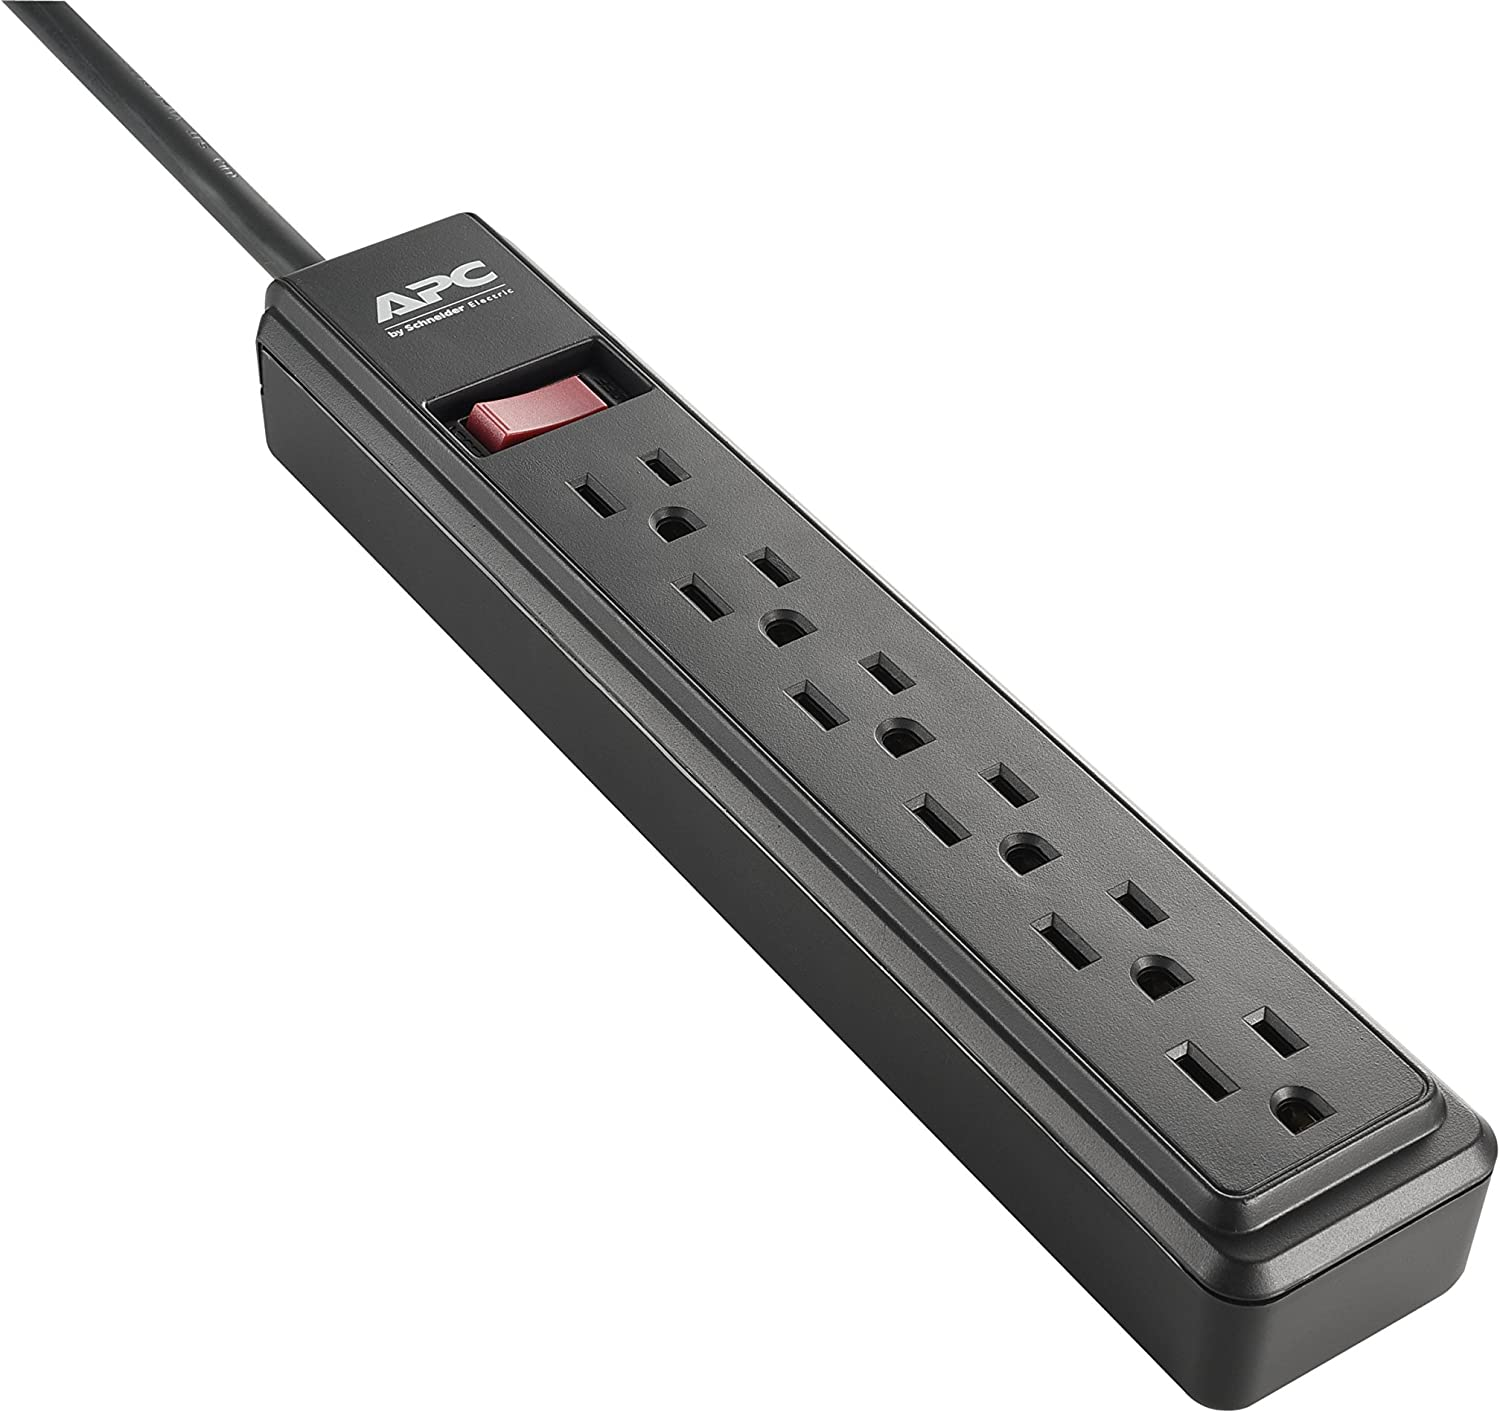 Amazon.com: APC Power Strip, 6-Outlet Black Power Strip (PZ62B): Electronics